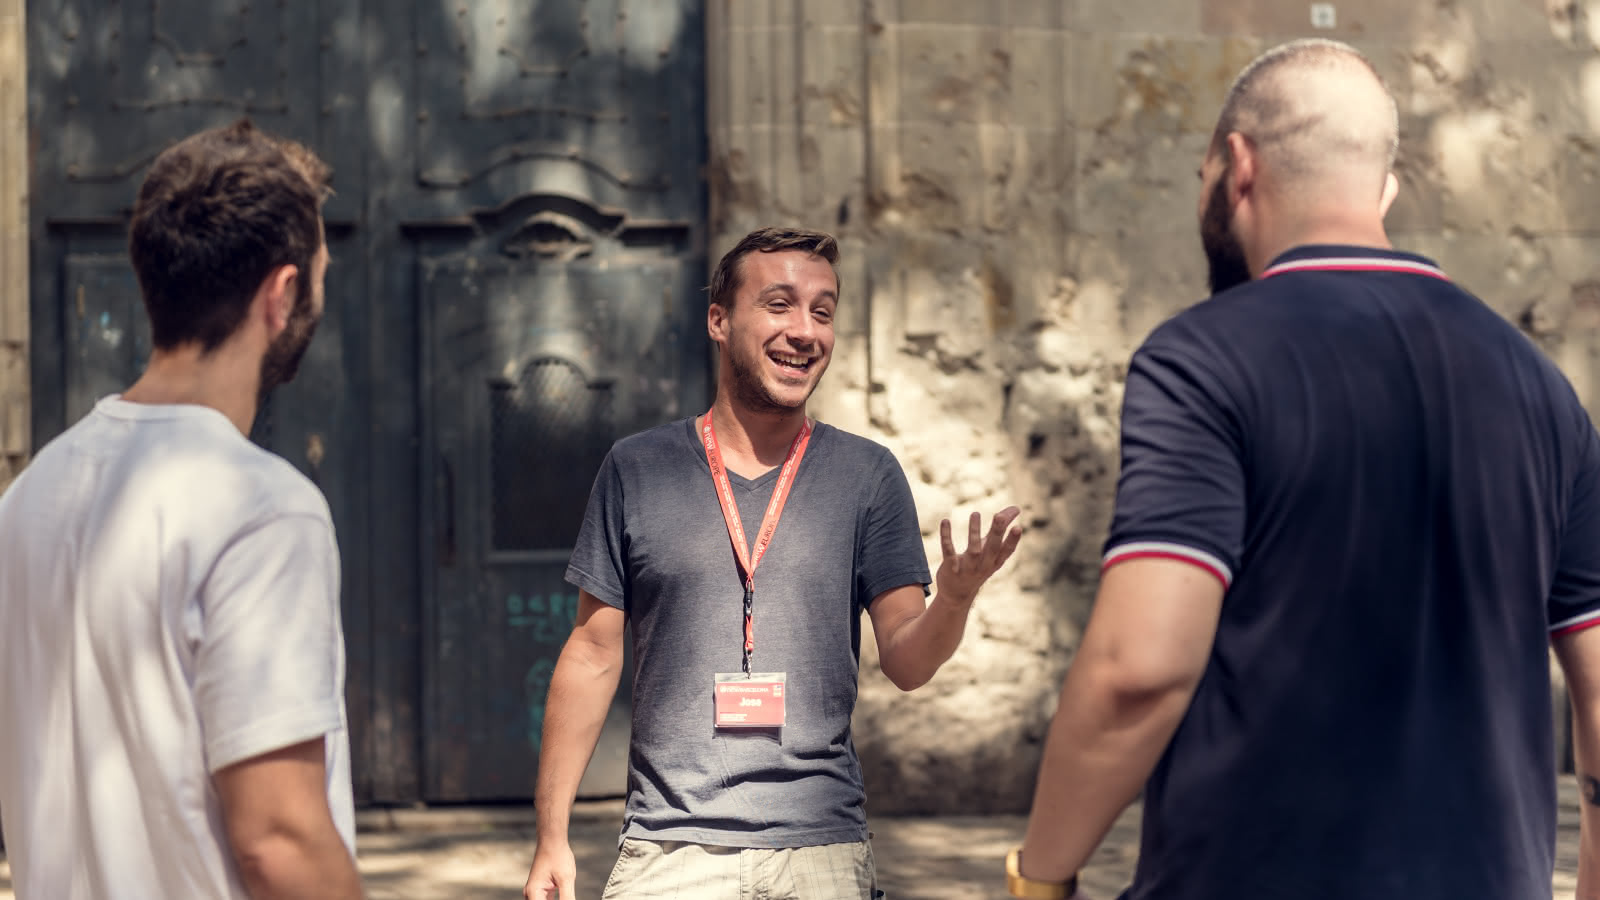 Free Tour Guide and Two Free Tour Guests in the Gothic Quarter